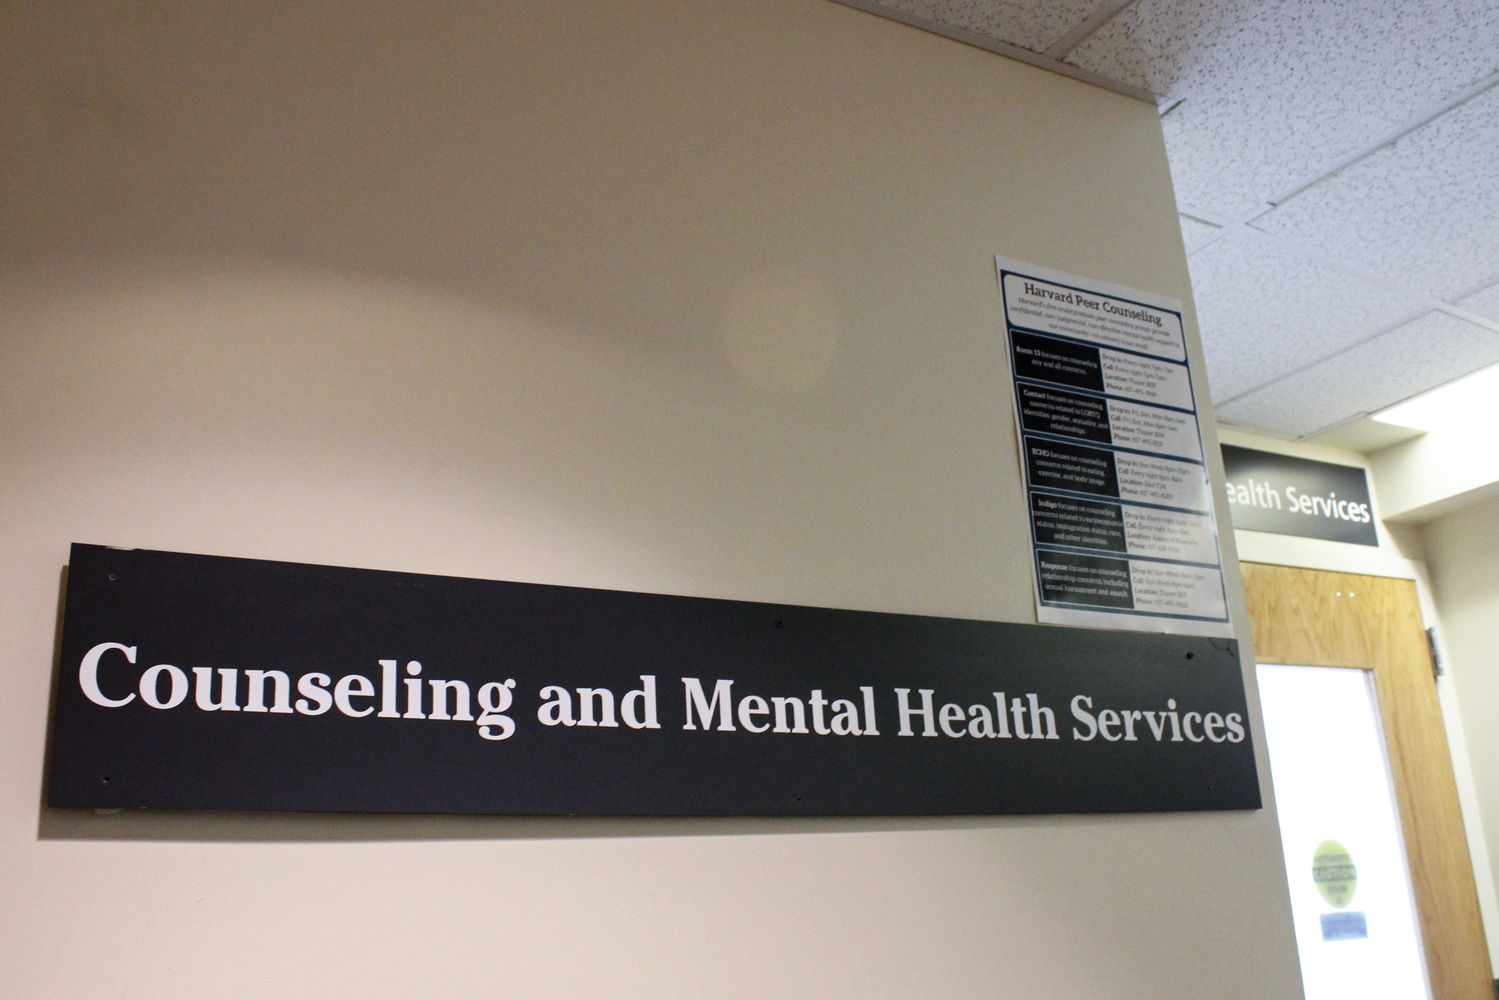 Counseling and Mental Health Services Office, one of the main resources available to students for support regarding a variety of issues, including anxiety and stress, is located on the fourth floor of Harvard University Health Services.